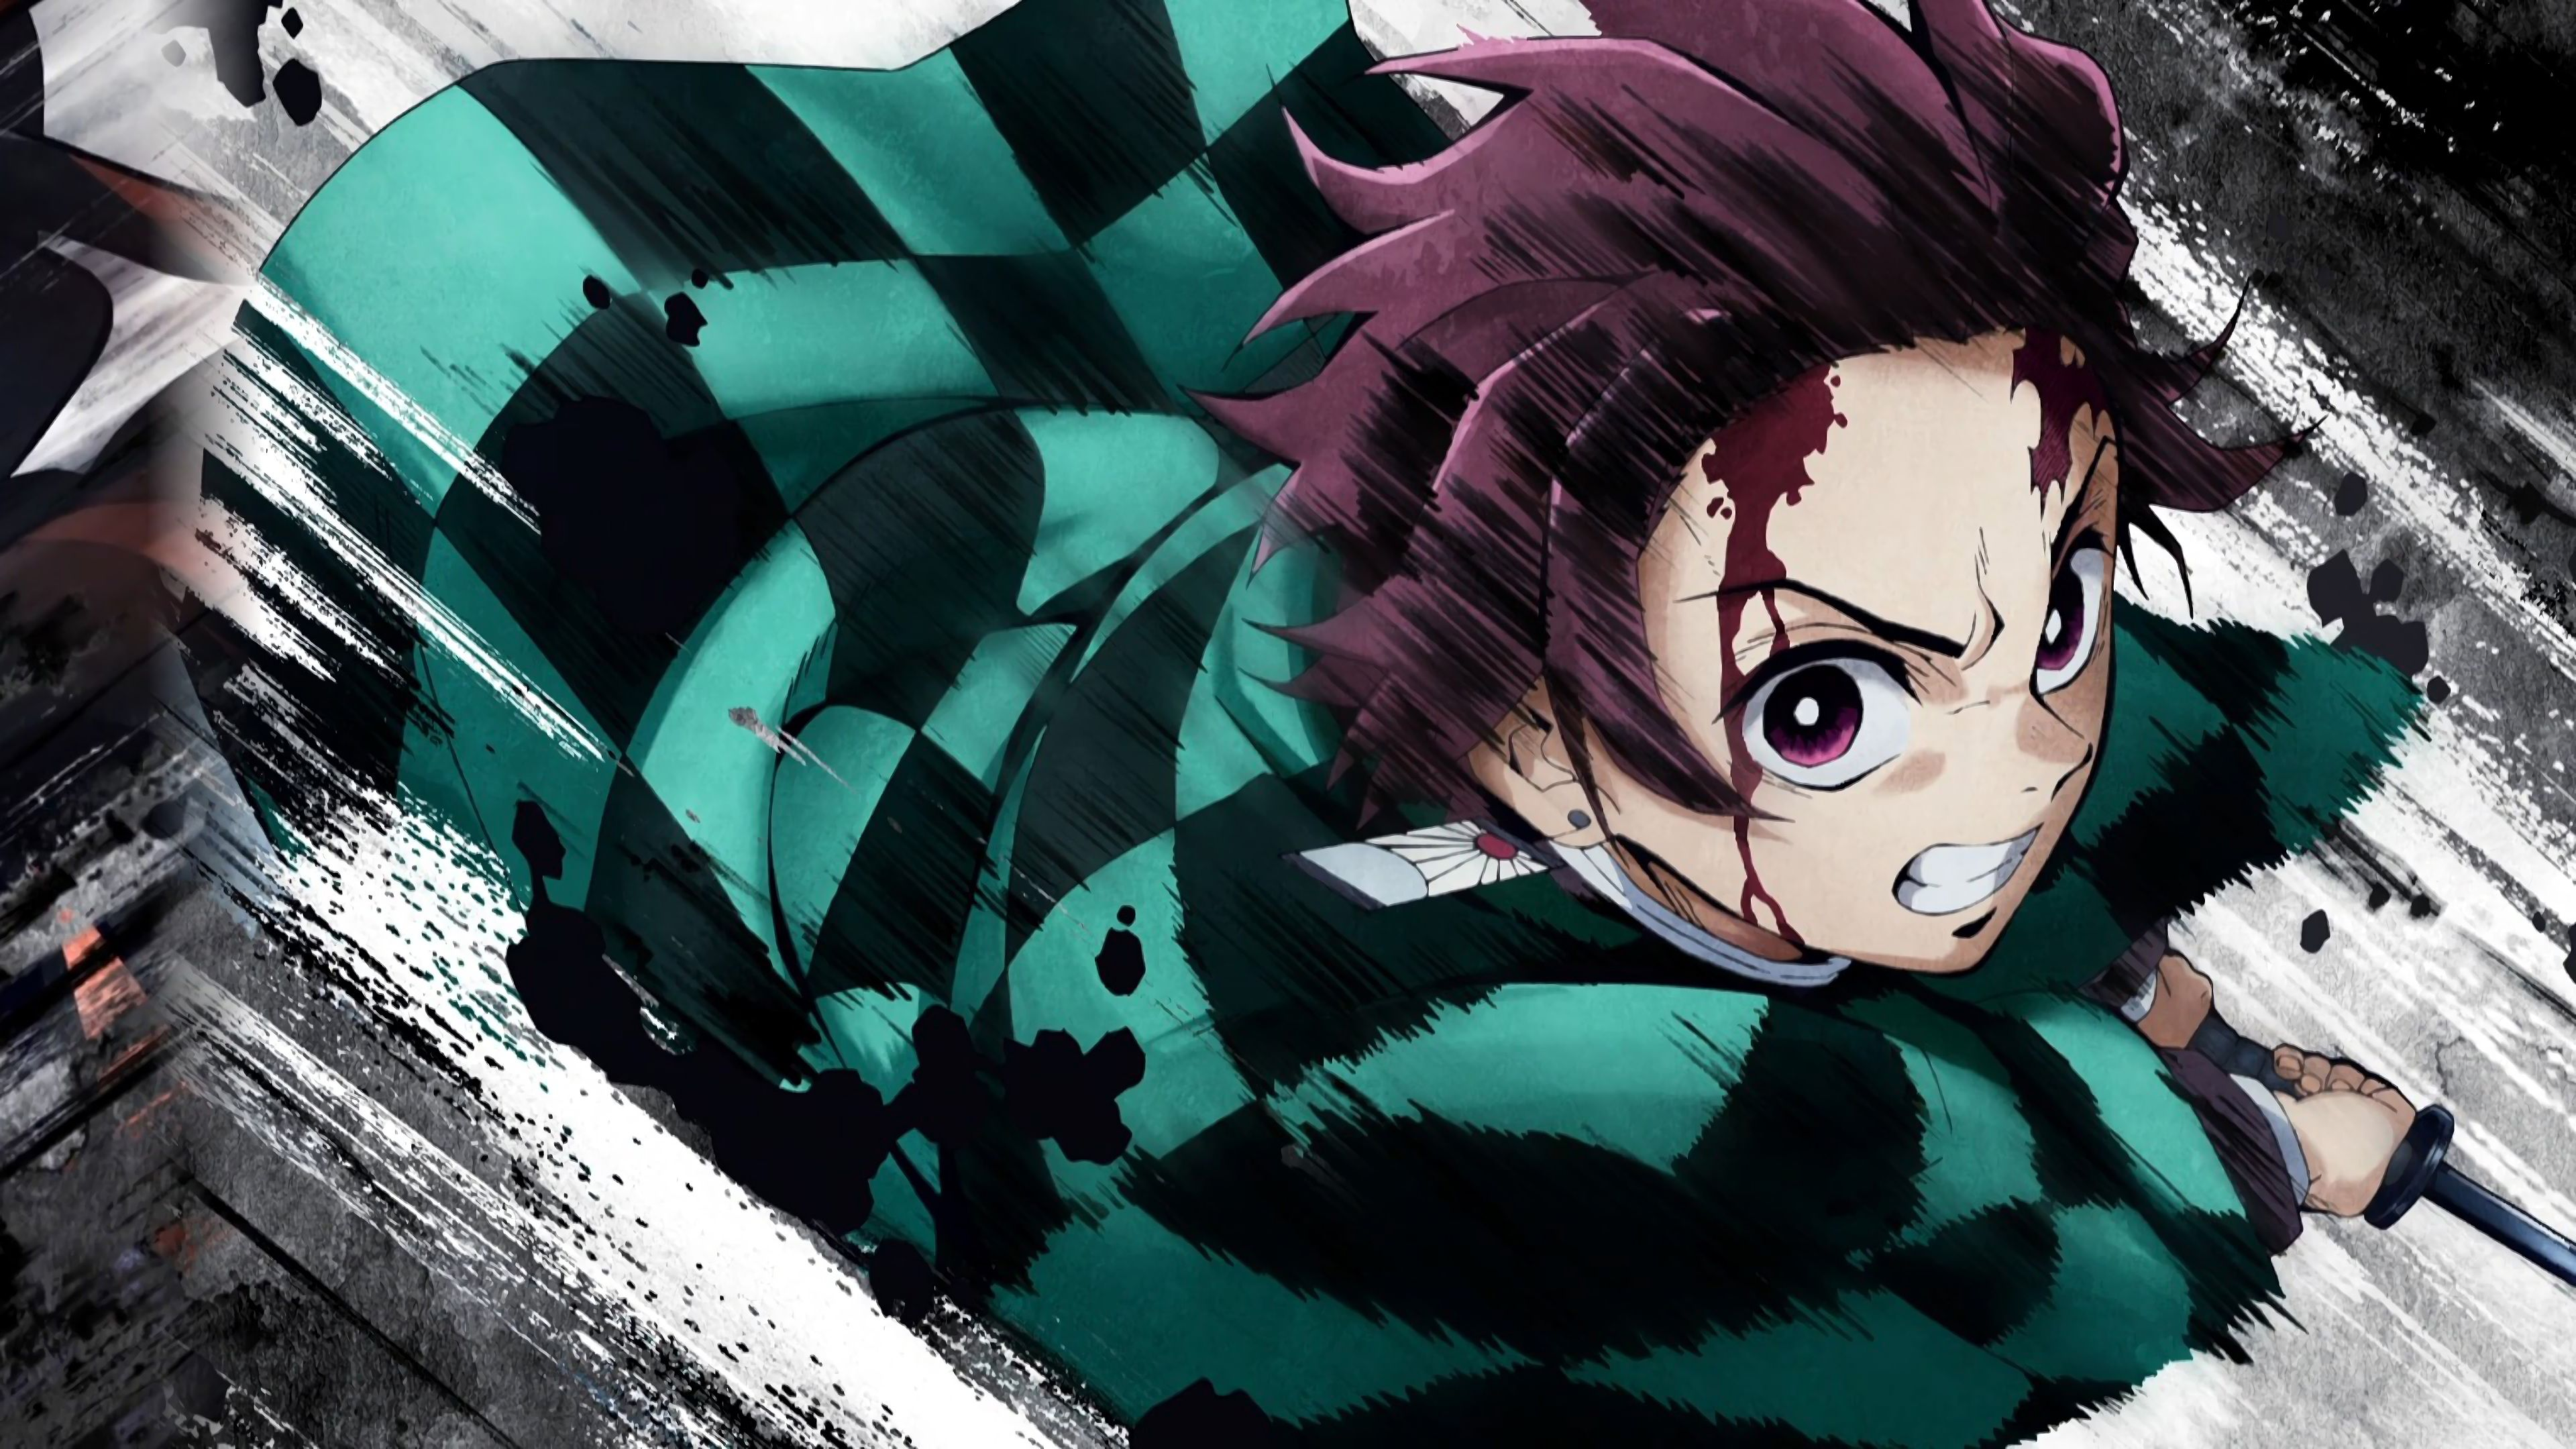 Kimetsu No Yaiba Wallpaper Hd Pc Tanjirou Kamado Kimetsu No Yaiba 4k Wallpaper 34 Yuinime Wallpaper Engine Anime Free Download Kim In 2020 Demon Slayer Anime Slayer